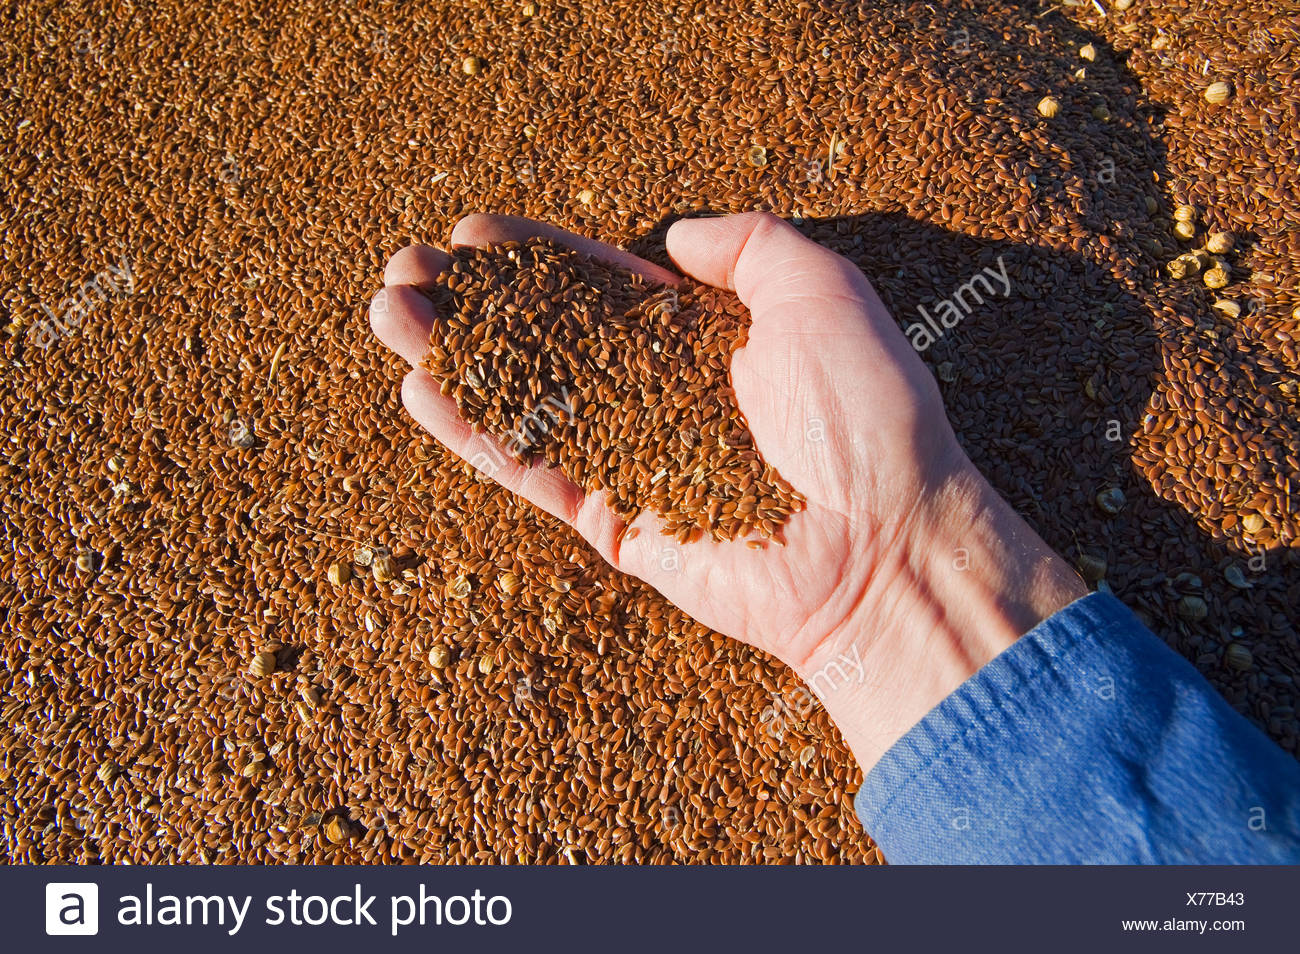 a hand holds flax seed that has been loaded into a farm truck during the harvest, near Lorette, Manitoba, Canada - Stock Image